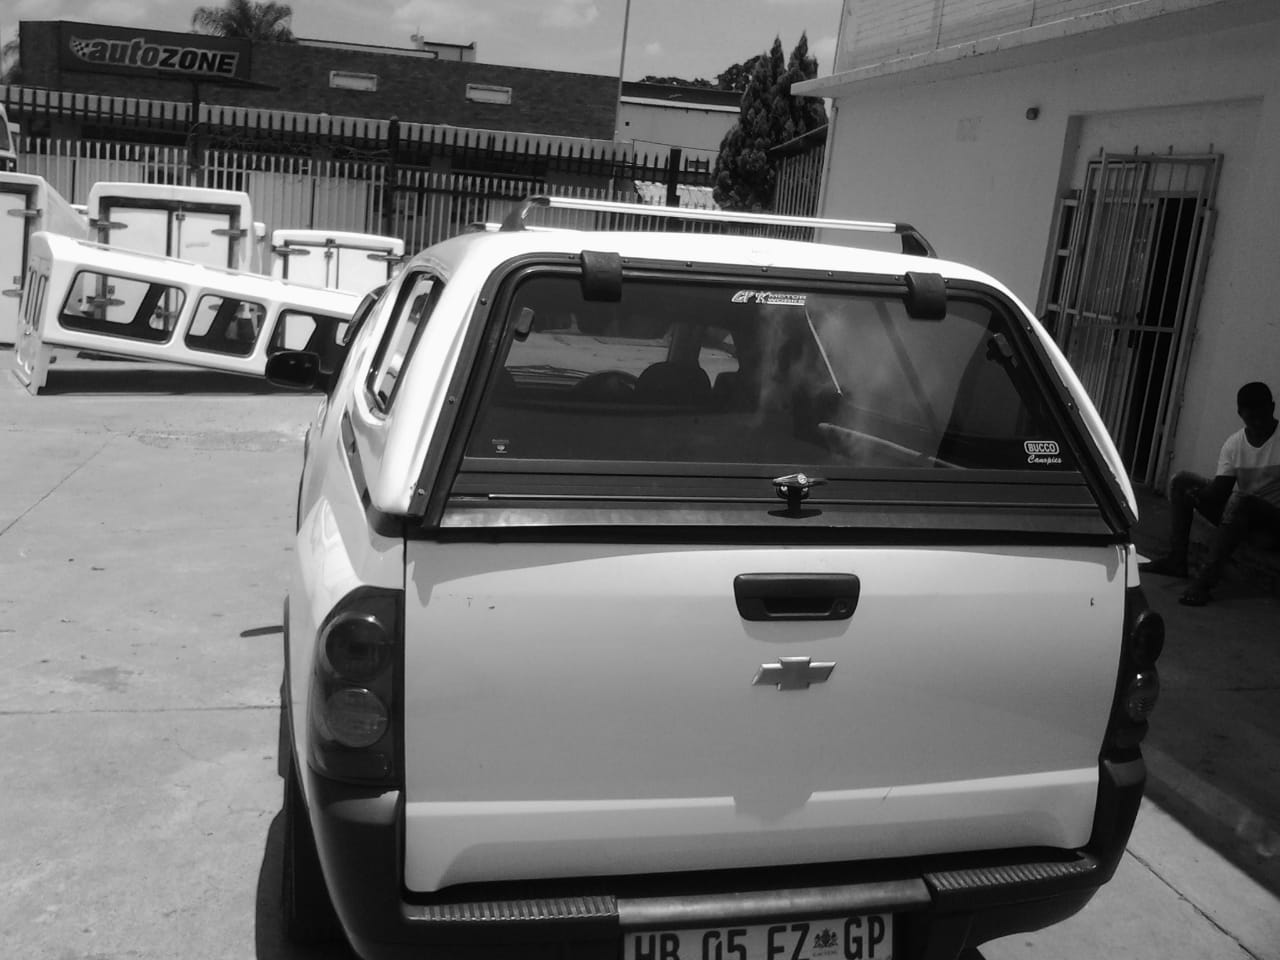 CORSA UTILITY 2003 - 2011 BUCCO LOW - LINER CANOPY BAKKIE FOR SALE!!